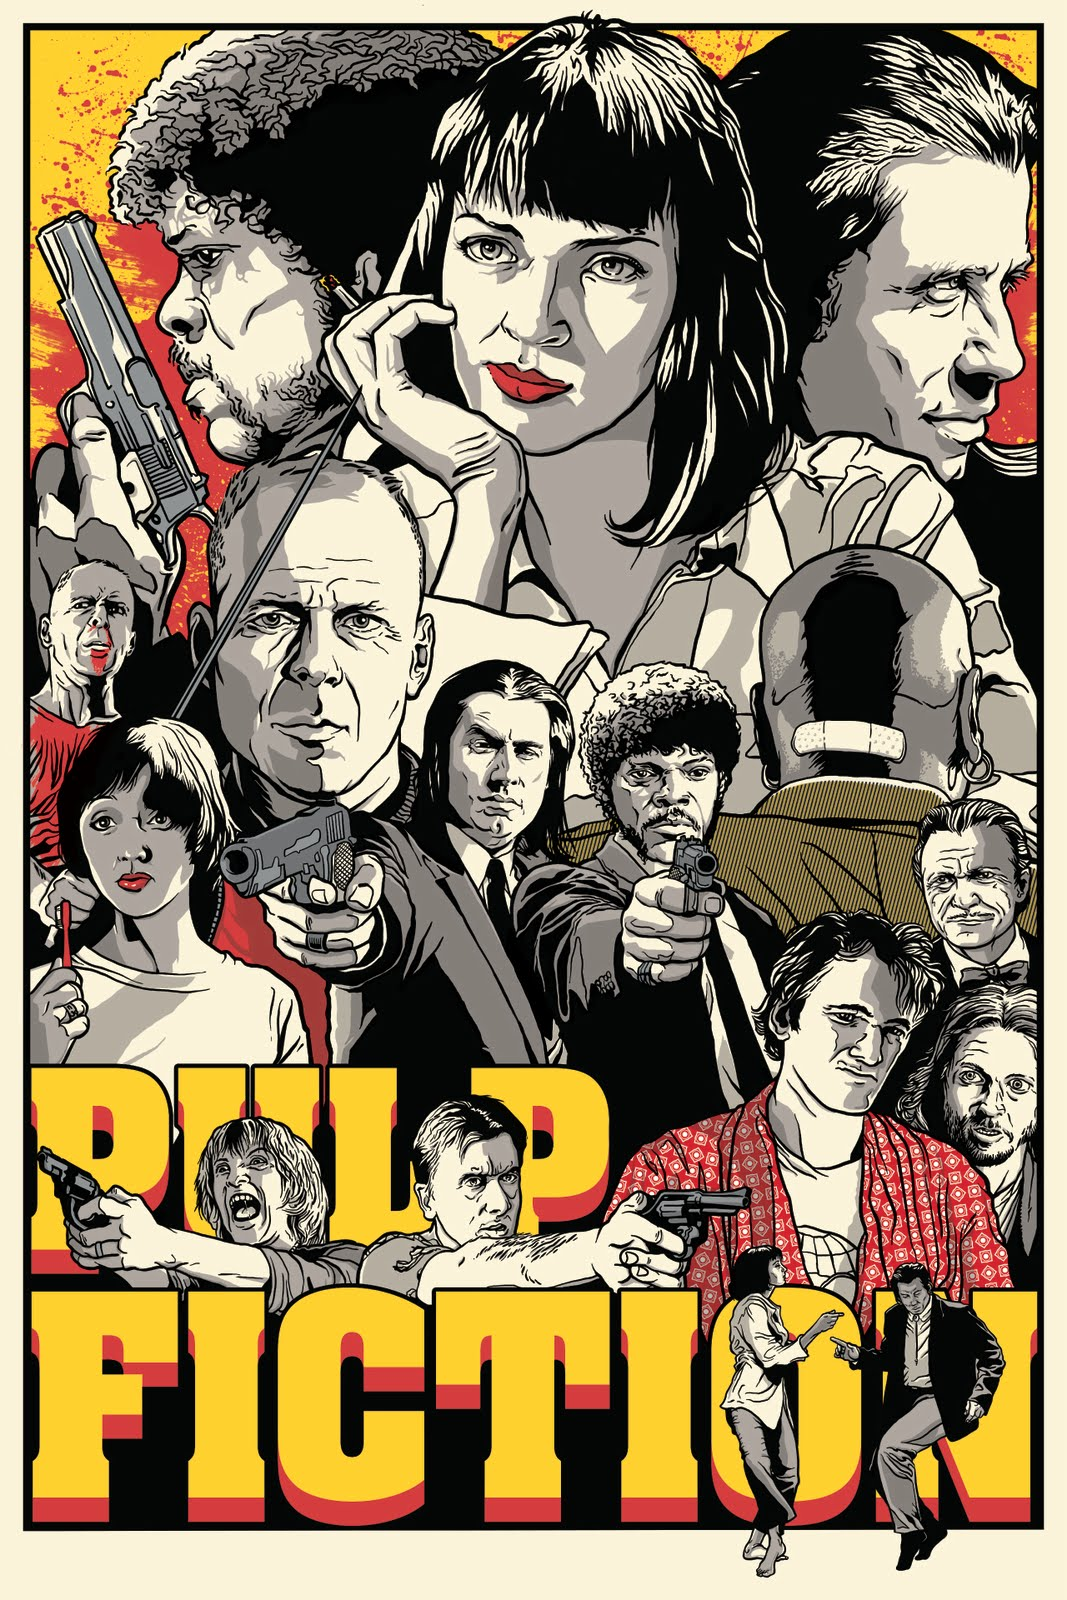 Joshua budich pulp fiction poster now